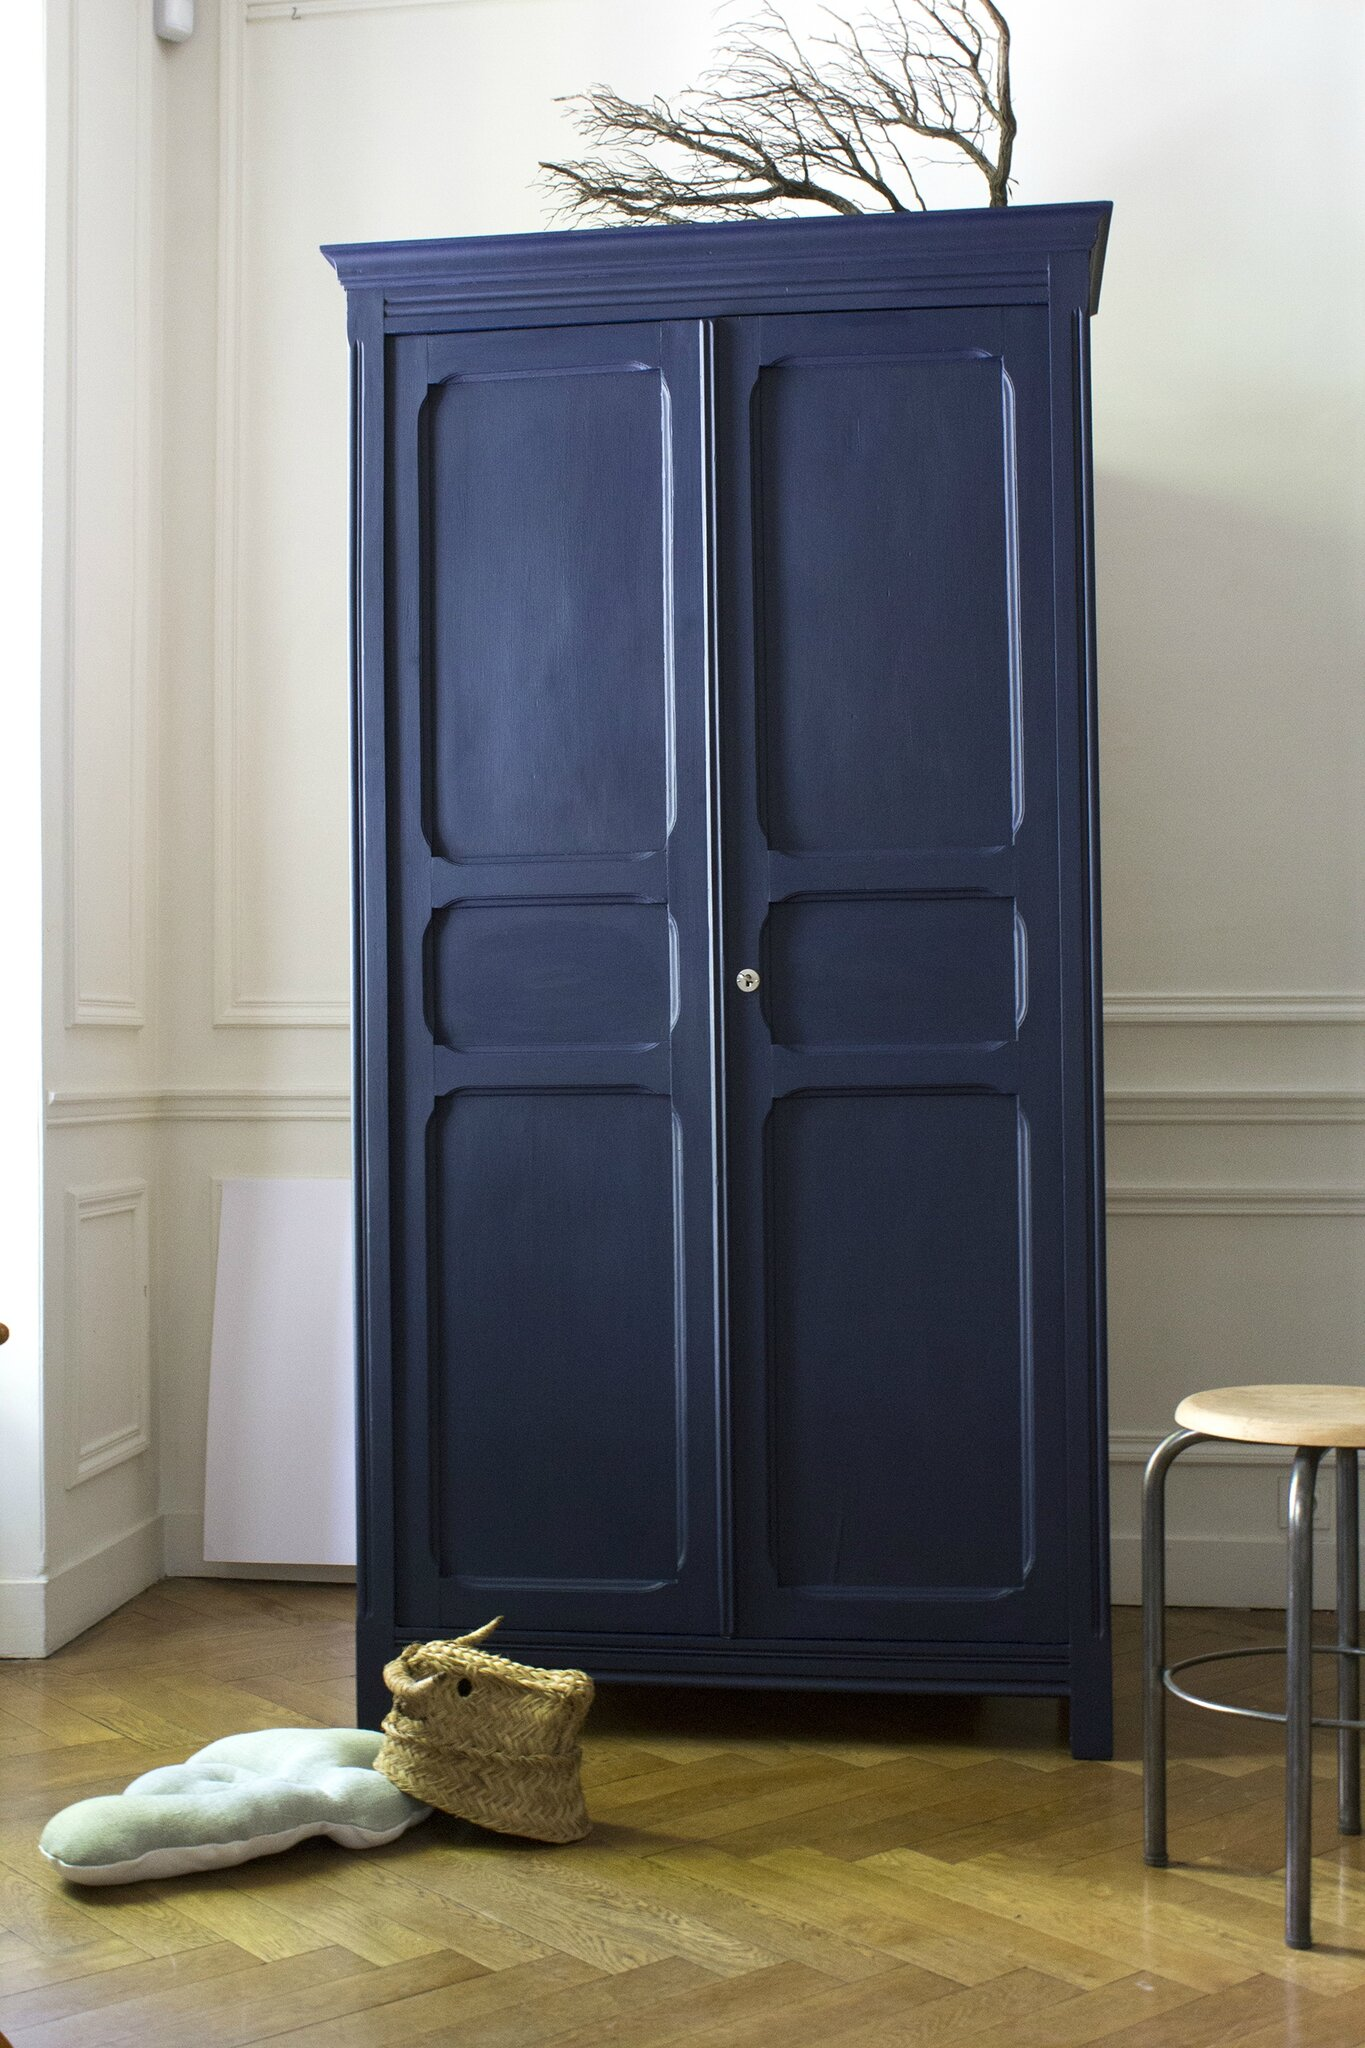 armoire parisienne bleu franc trendy little. Black Bedroom Furniture Sets. Home Design Ideas